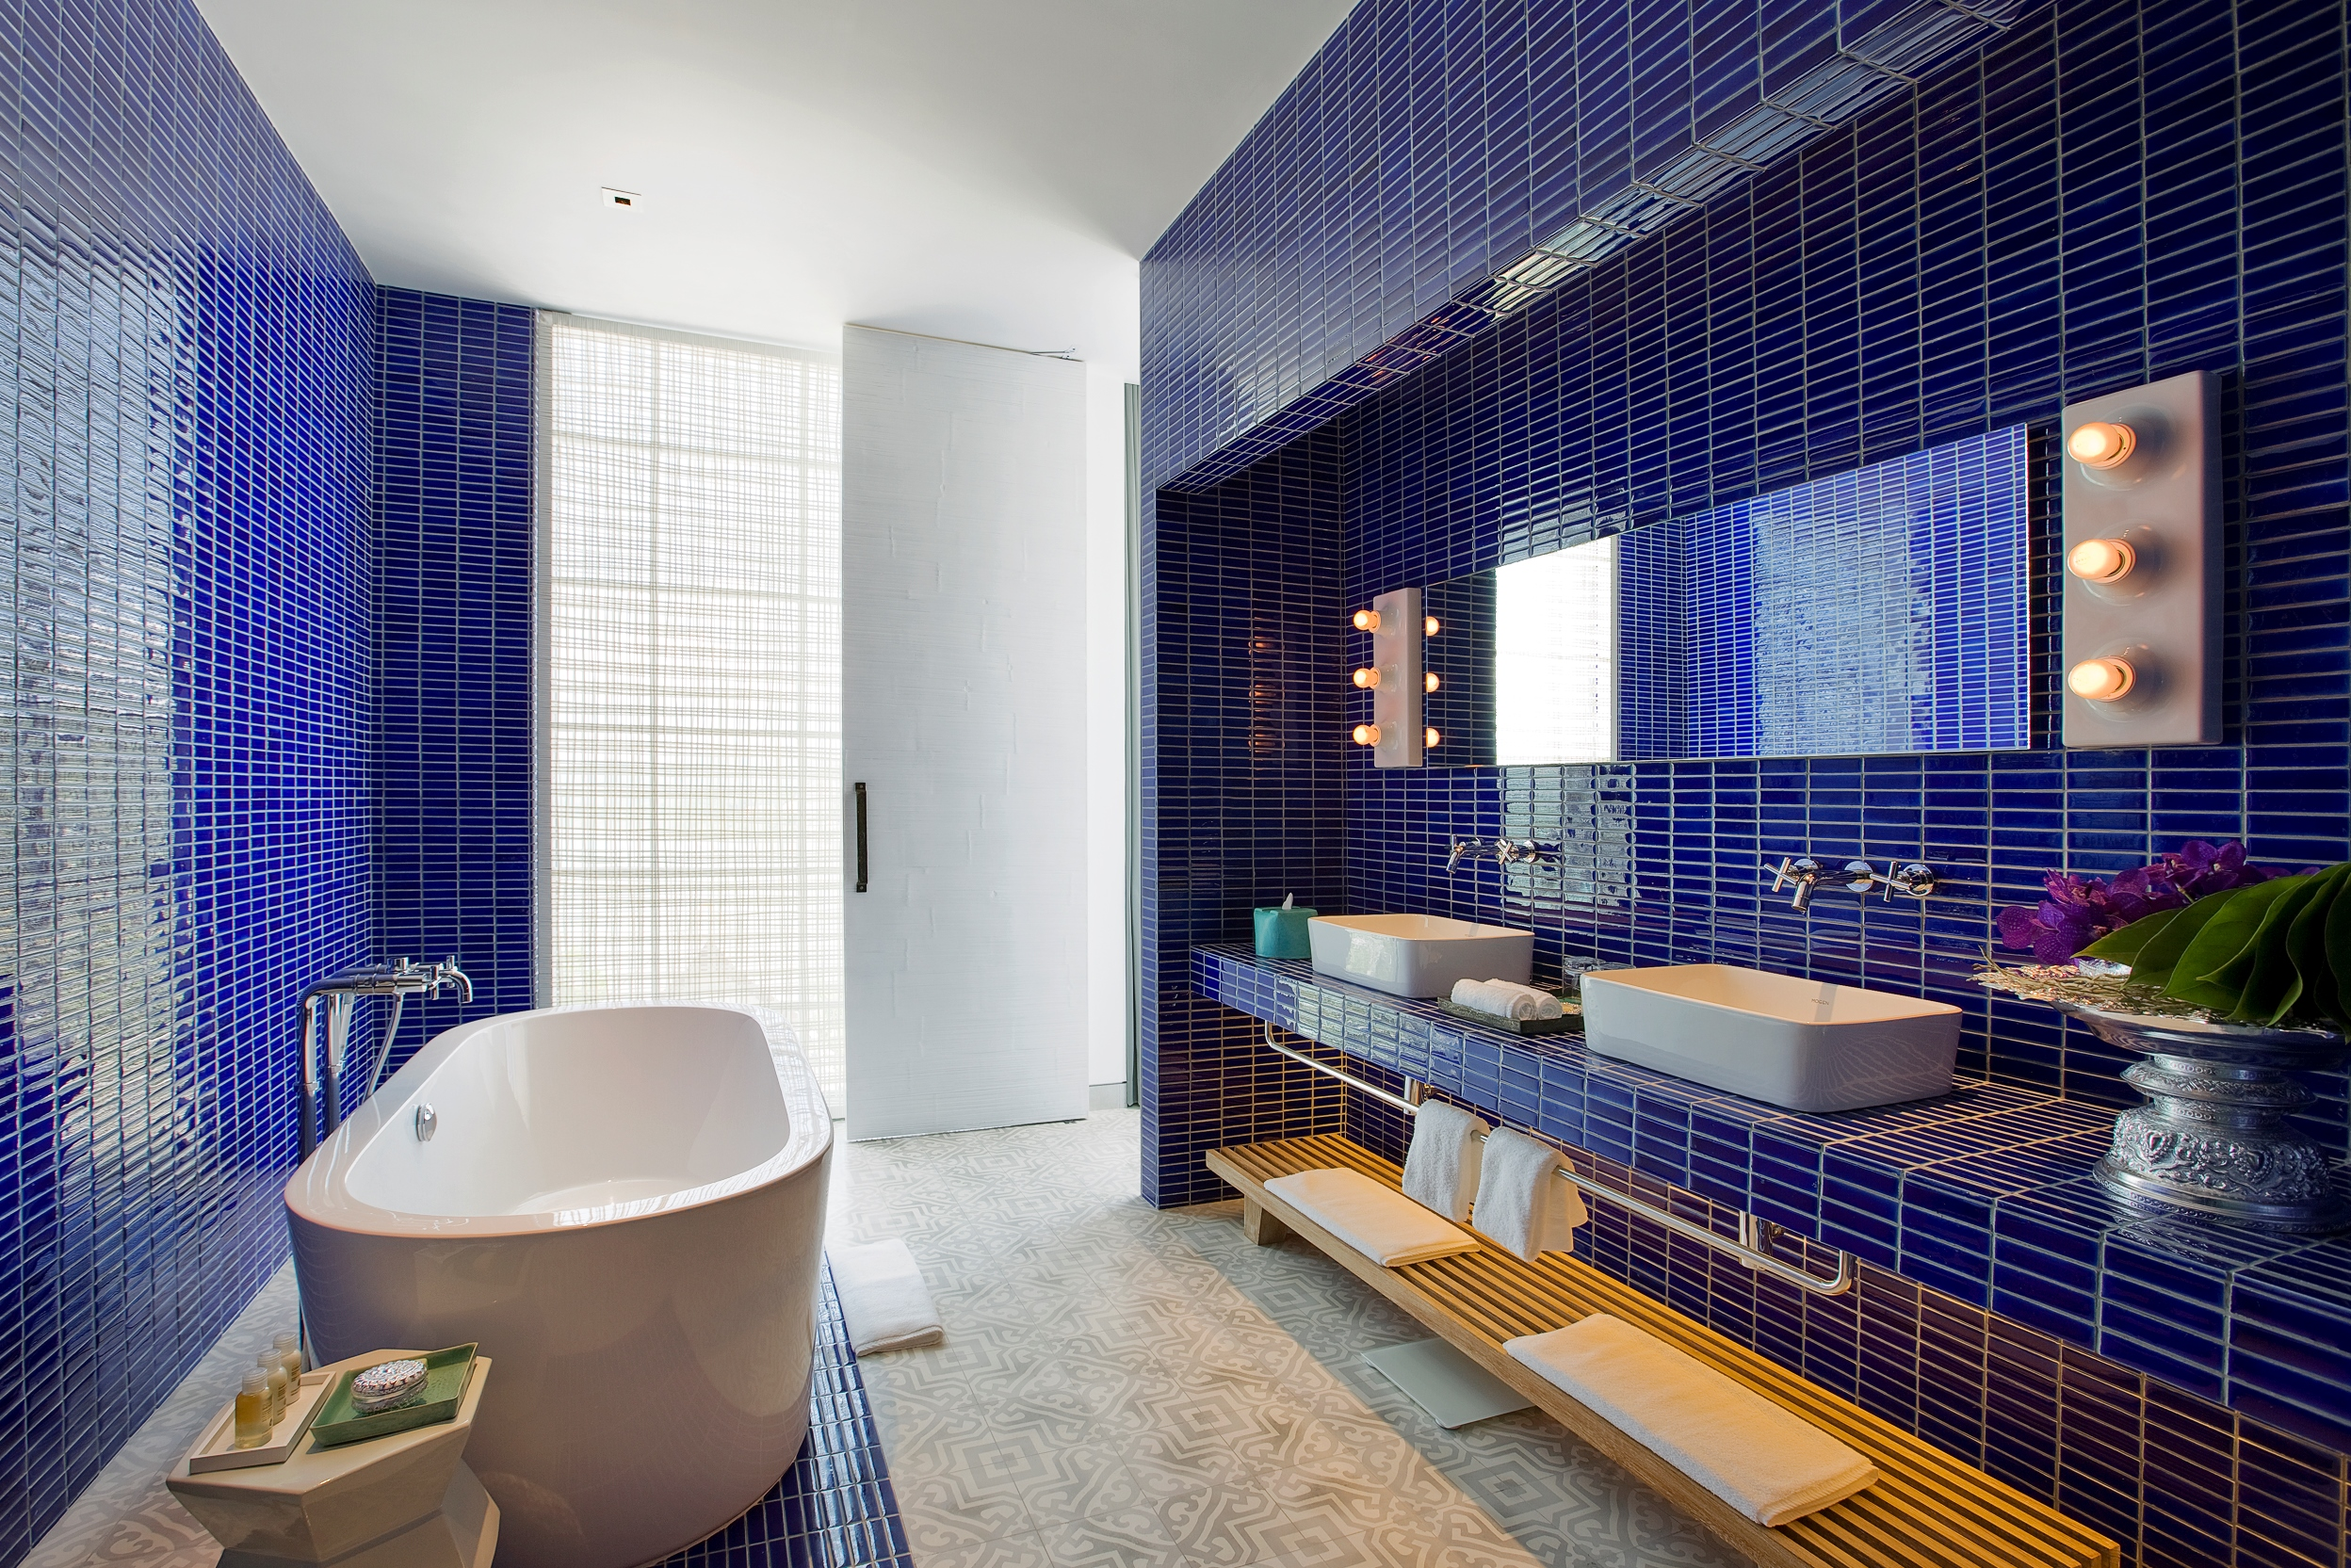 Verandah Room Bathroom